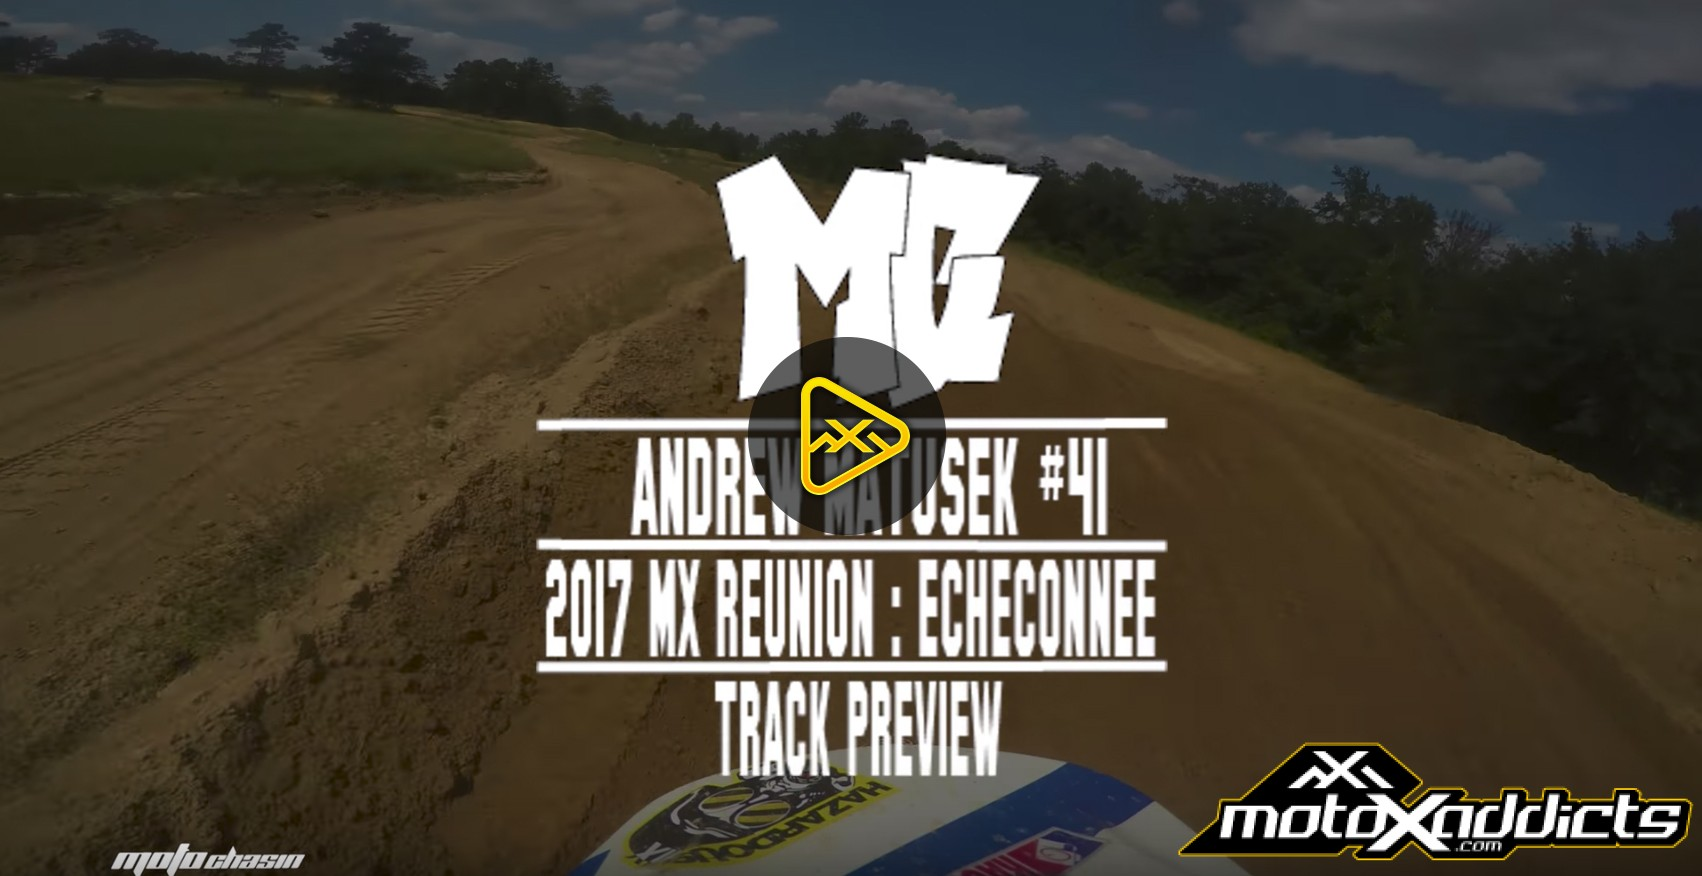 Track Preview: Andrew Matusek at 2017 MX Reunion